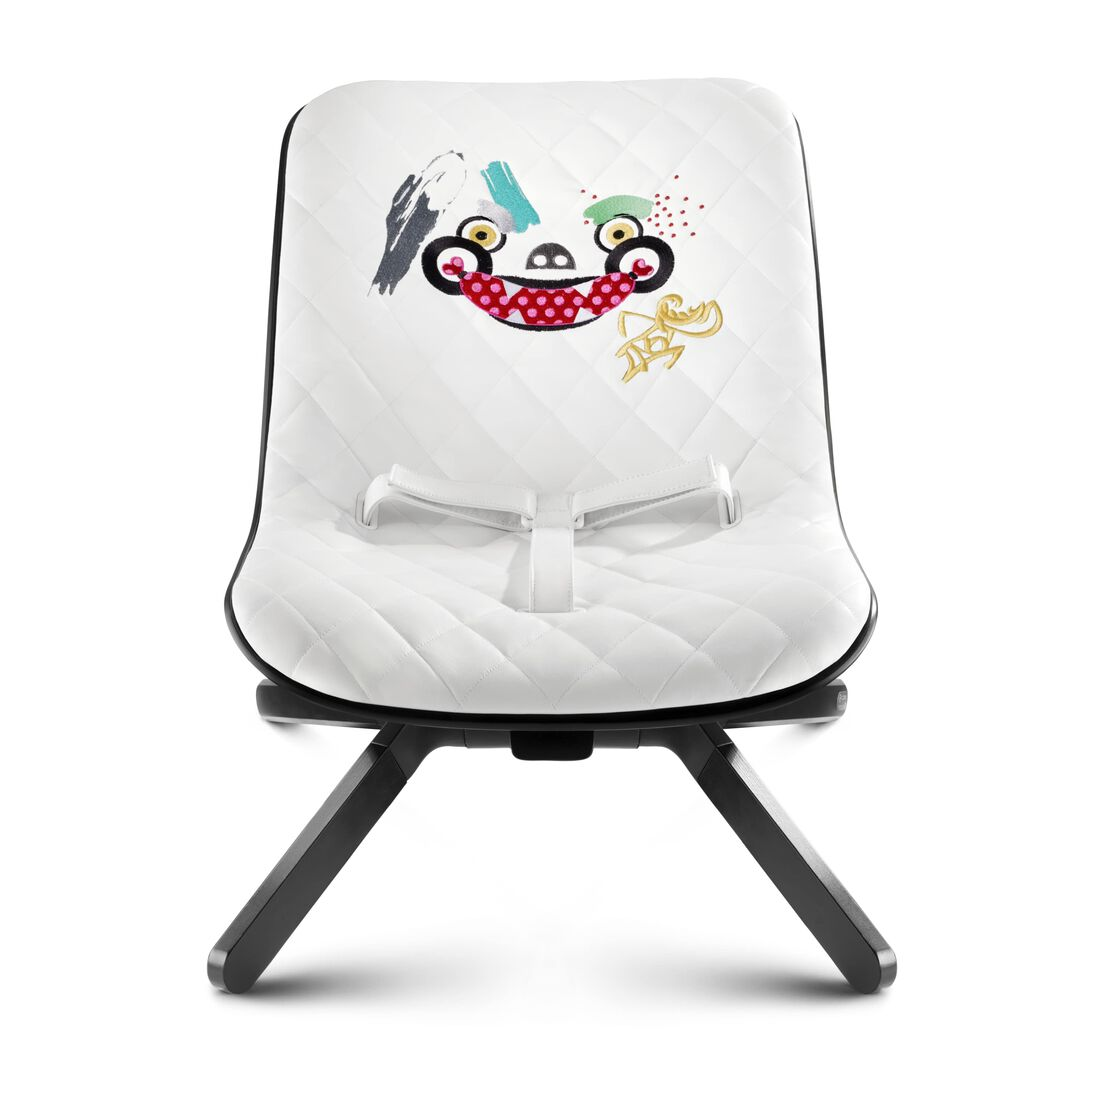 CYBEX Bouncer by Marcel Wanders